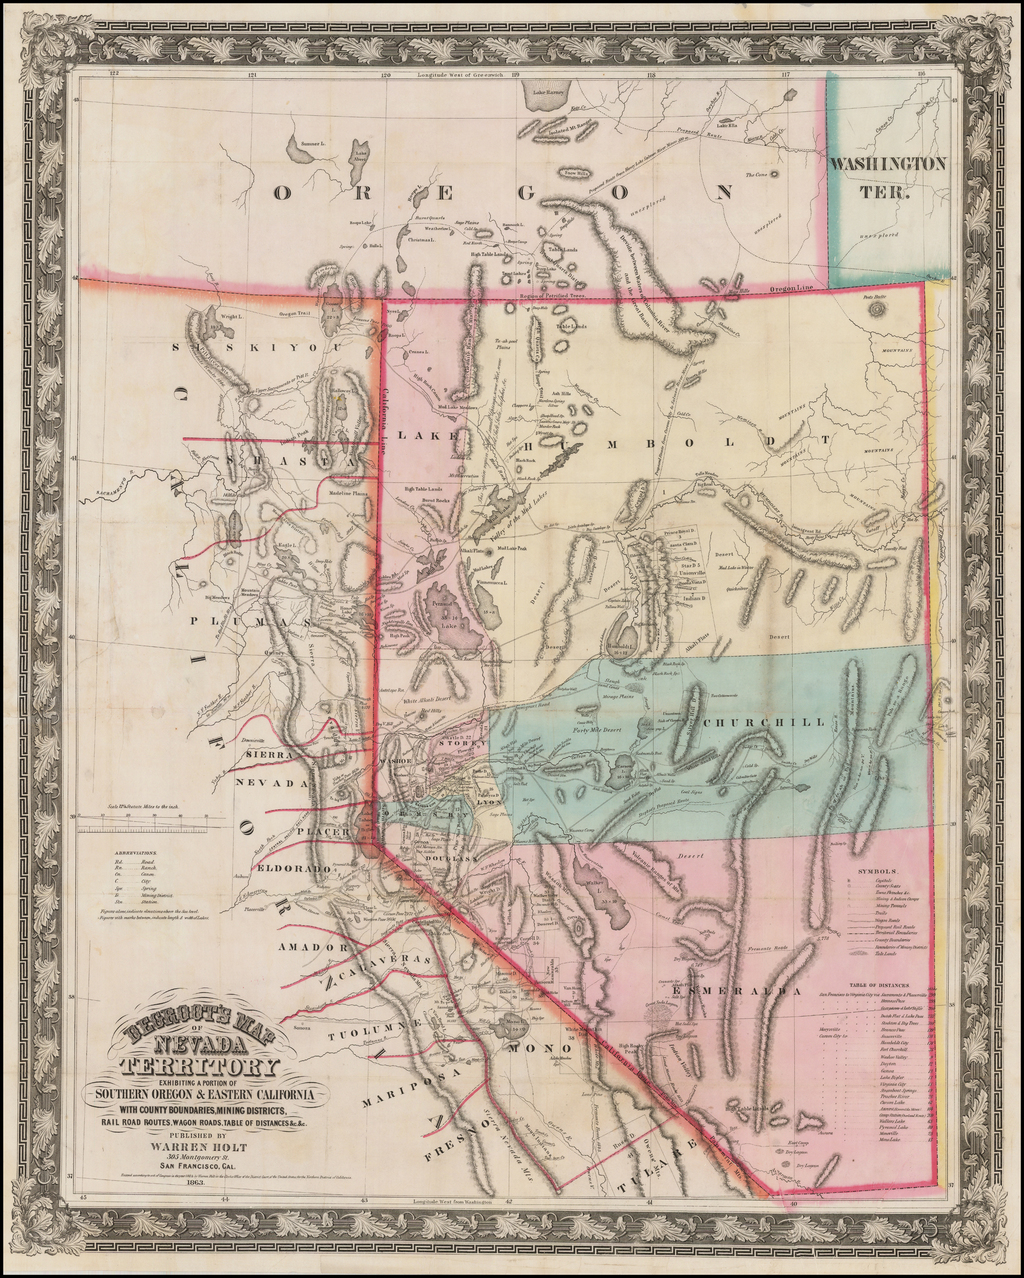 DeGroot's Map of Nevada Territory exhibiting a portion of southern Oregon and eastern California. . . 1863 (with Guide to Degroot's Map of Nevada Territory, Etc., Etc.) By Henry DeGroot